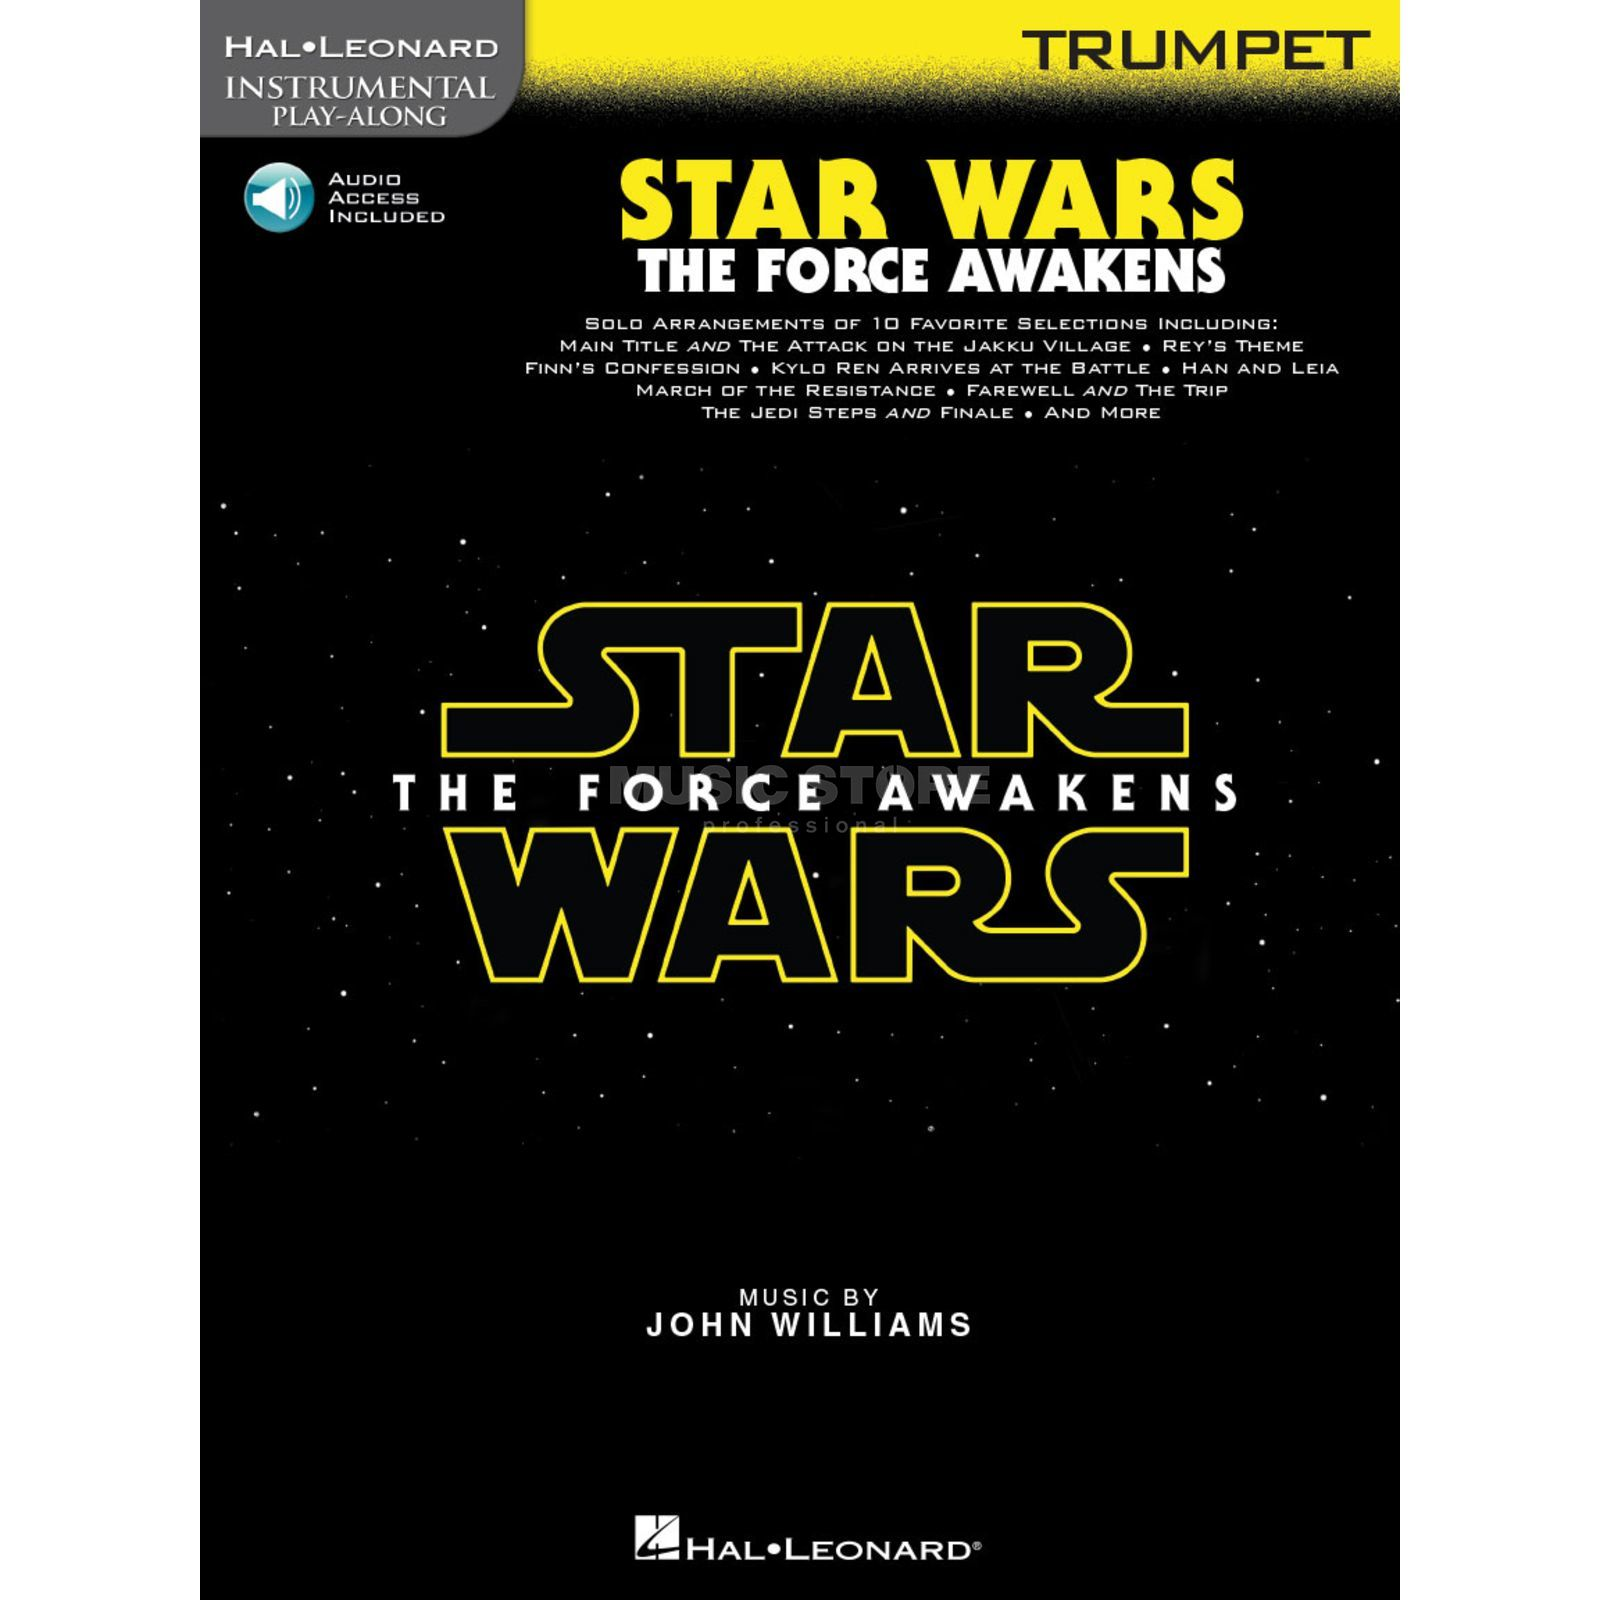 Hal Leonard Instrumental Play-Along: Star Wars - The Force Awakens - Trumpet Zdjęcie produktu